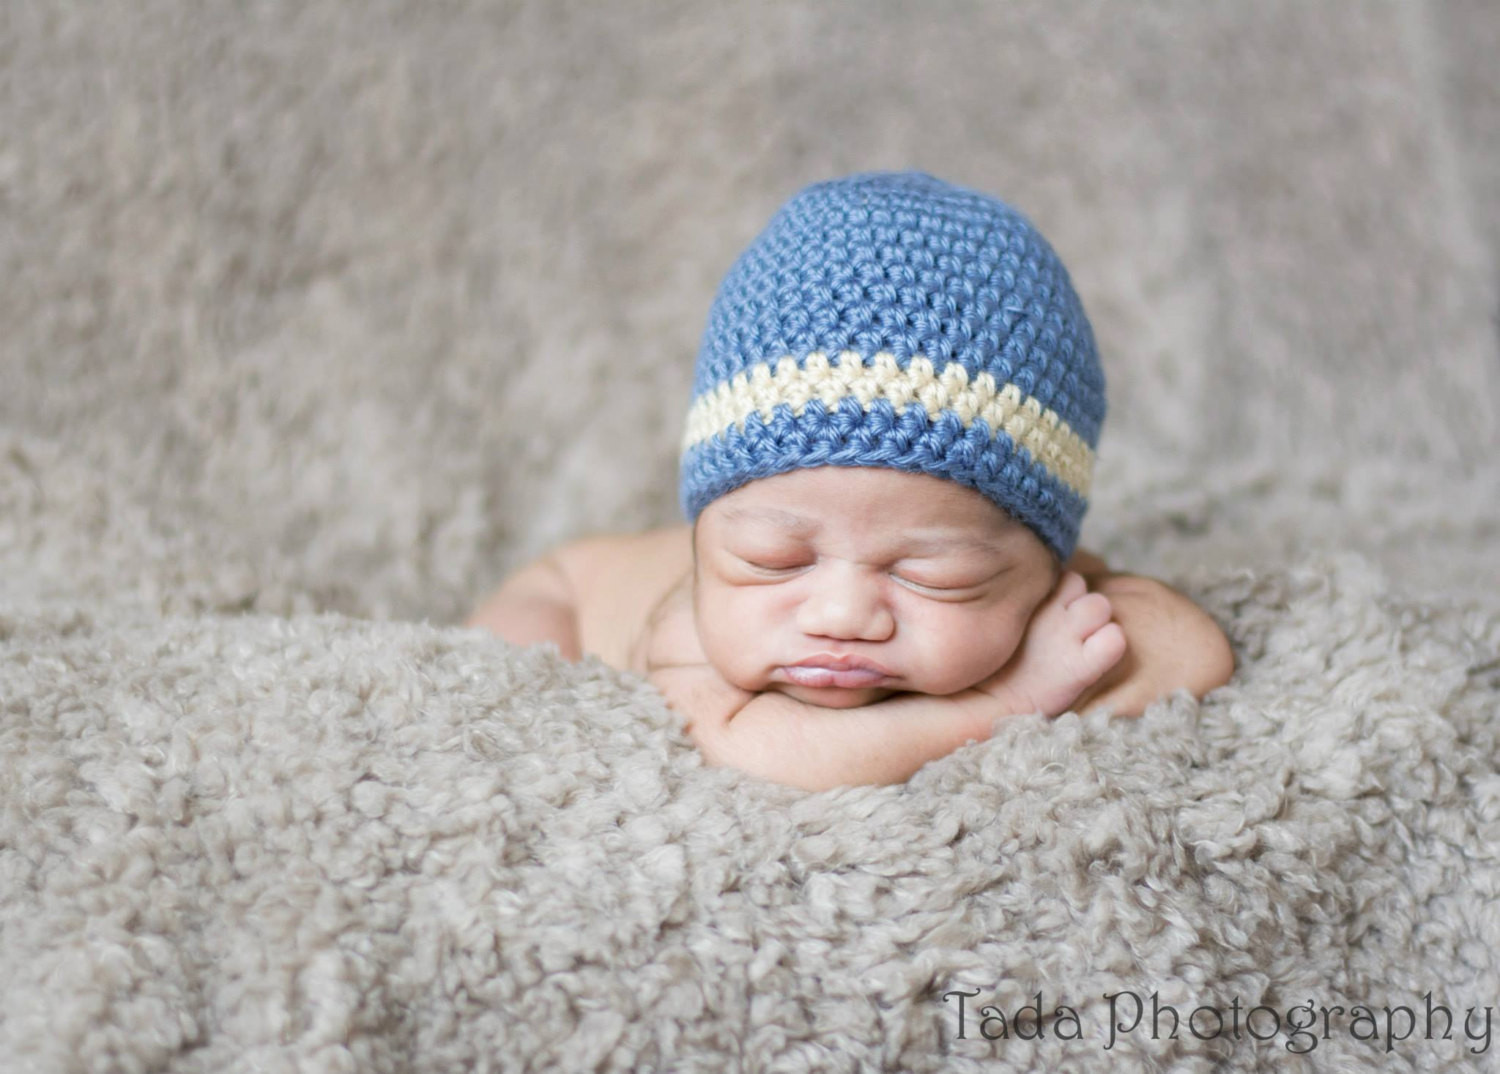 Baby Boy Crochet Patterns Awesome Baby Beanie Crochet Pattern Easy Beanie Pattern Of Awesome 41 Models Baby Boy Crochet Patterns